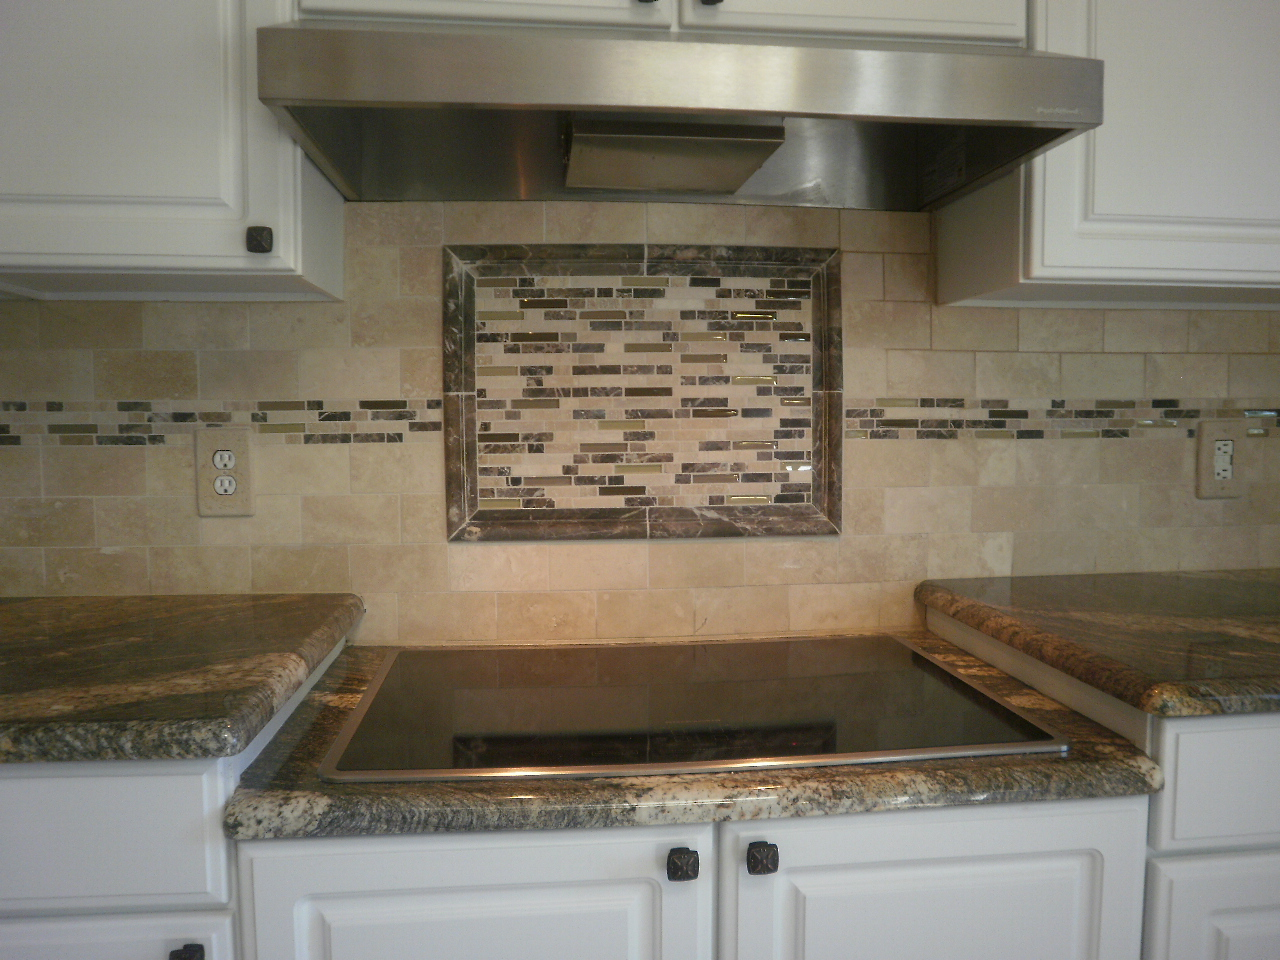 Integrity installations a division of front for Kitchen backsplash design gallery